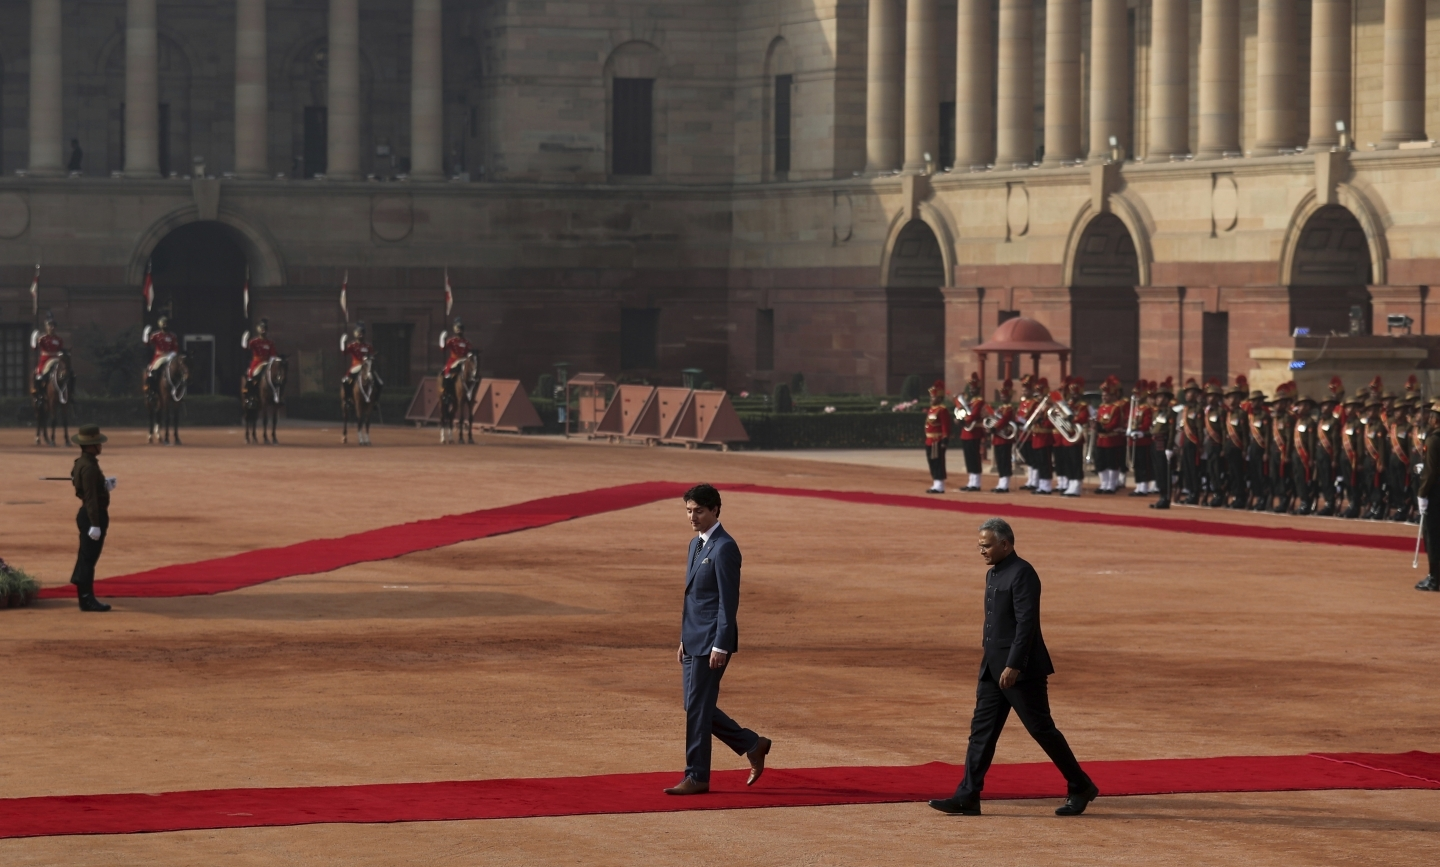 Canadian Prime Minister Justin Trudeau during his ceremonial reception at the Indian presidential palace in New Delhi, India, February 23, 2018. (AP Photo/Manish Swarup)